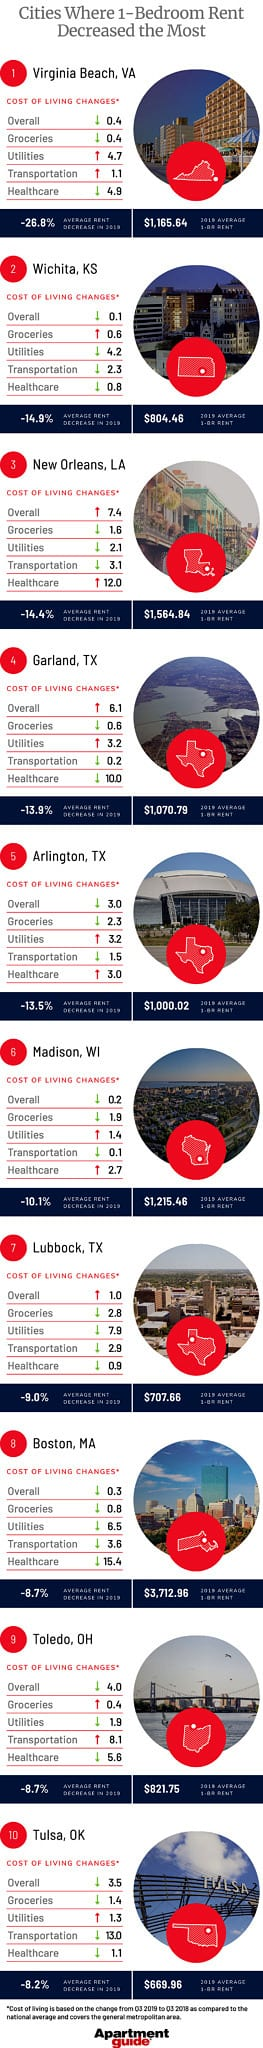 infographic showing 10 cities where one-bedroom rent decreased the most in 2019